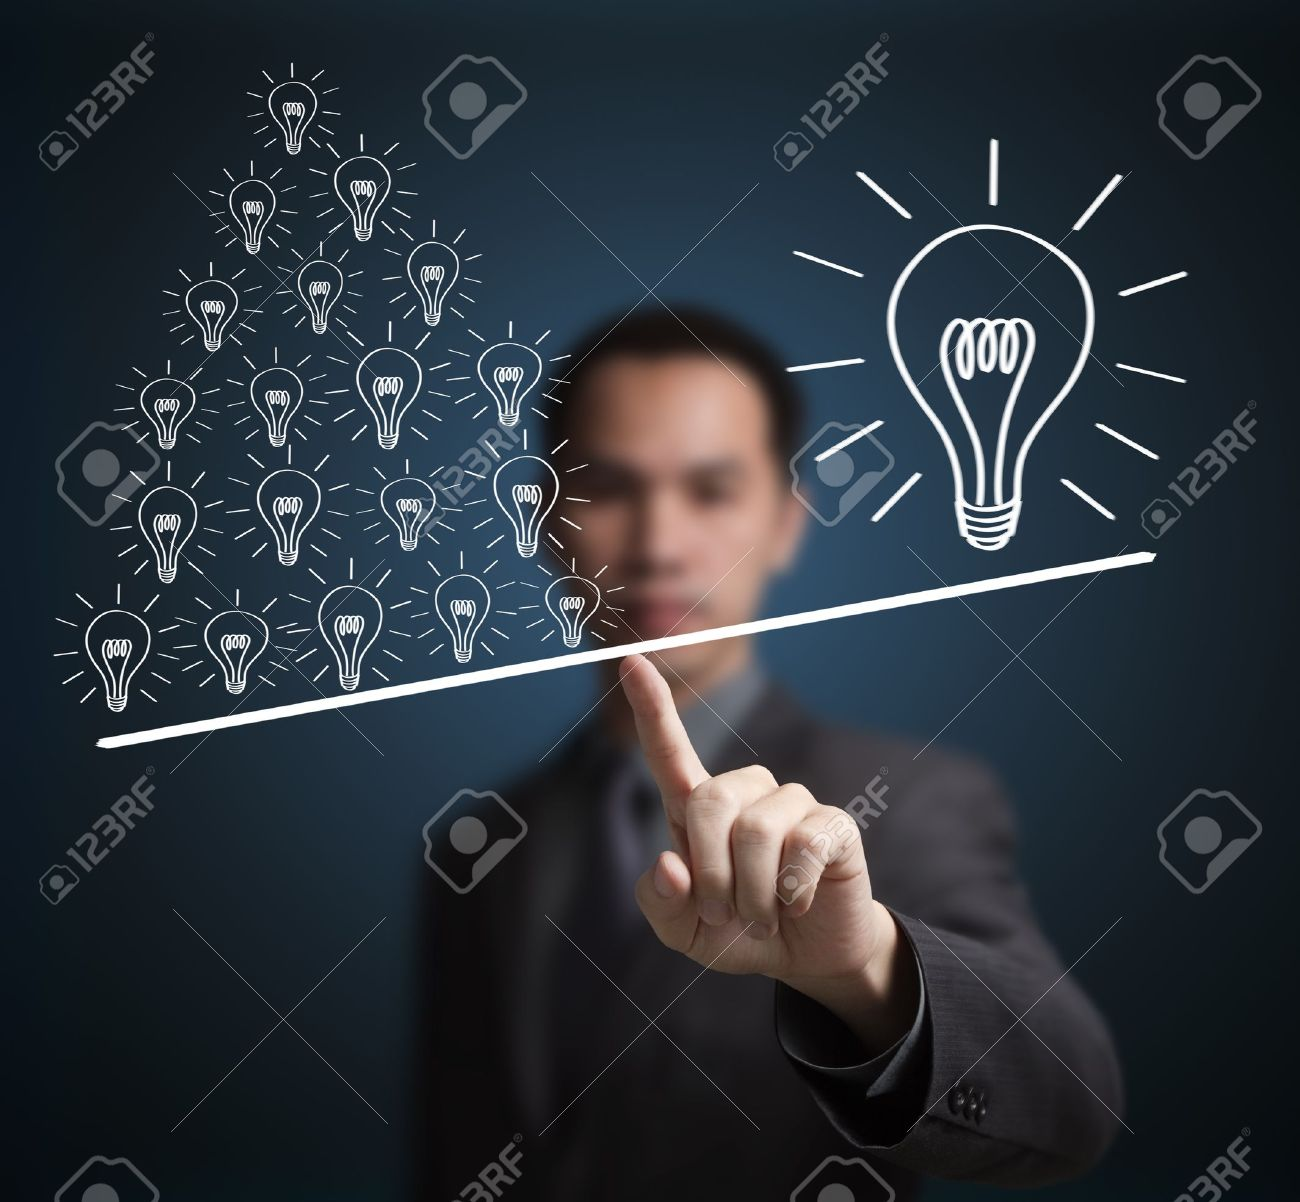 Concept of many small ideas are more important than one big idea   Express by balance weight on business man finger tip Stock Photo - 14789896